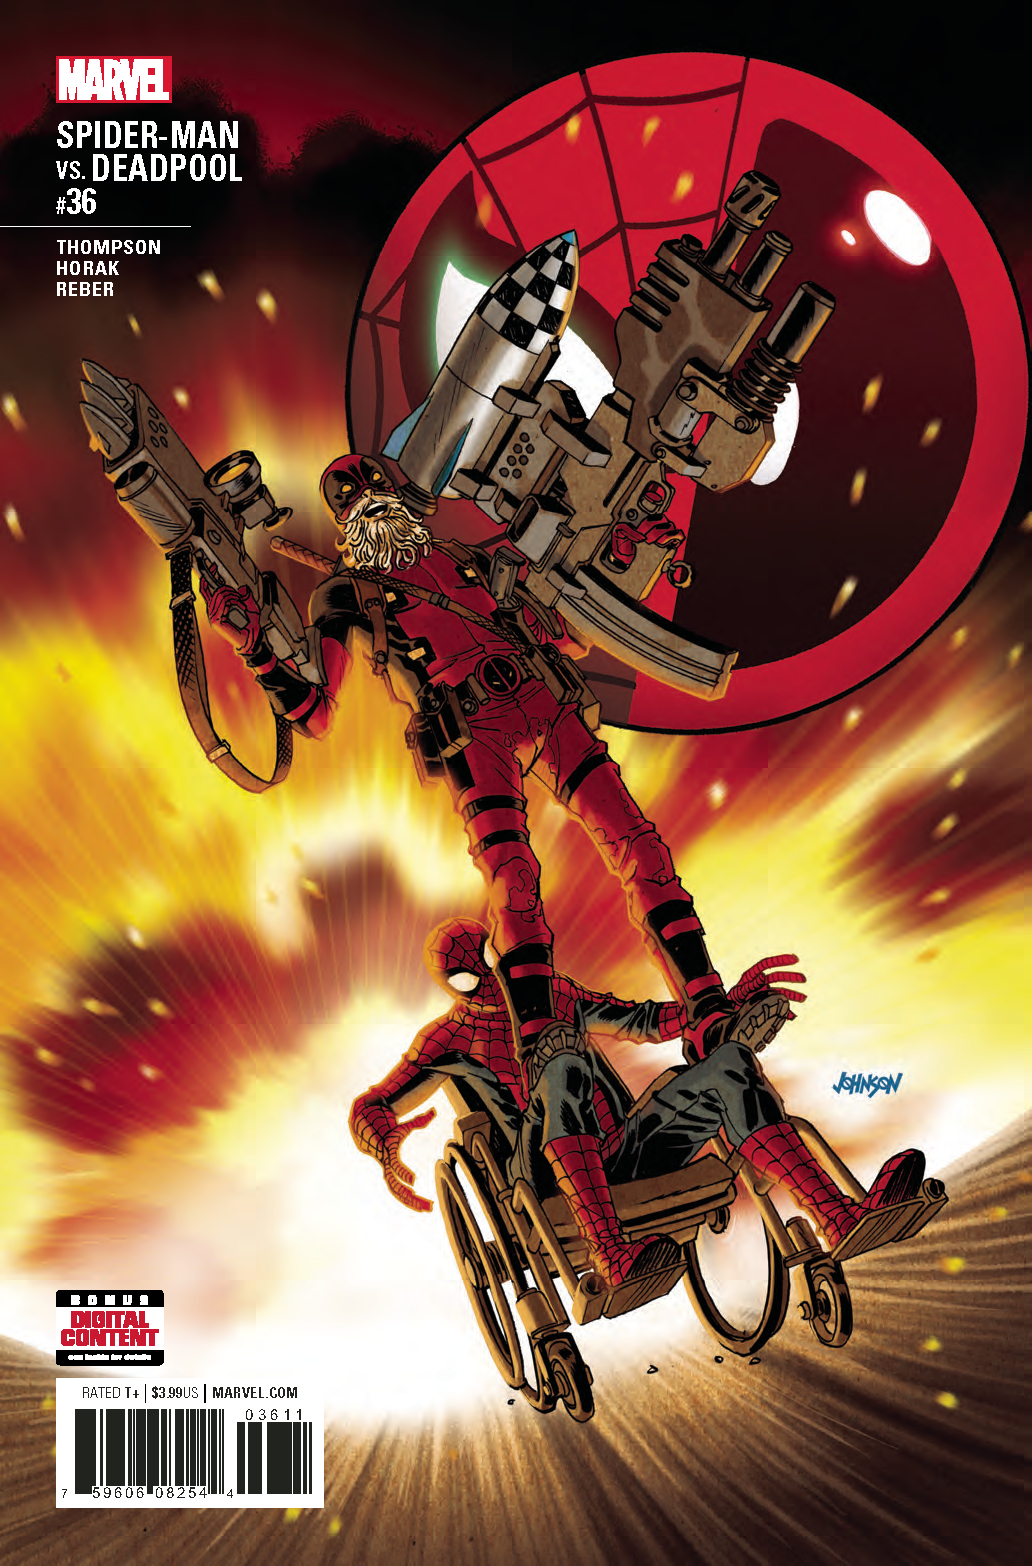 SPIDER-MAN DEADPOOL #36